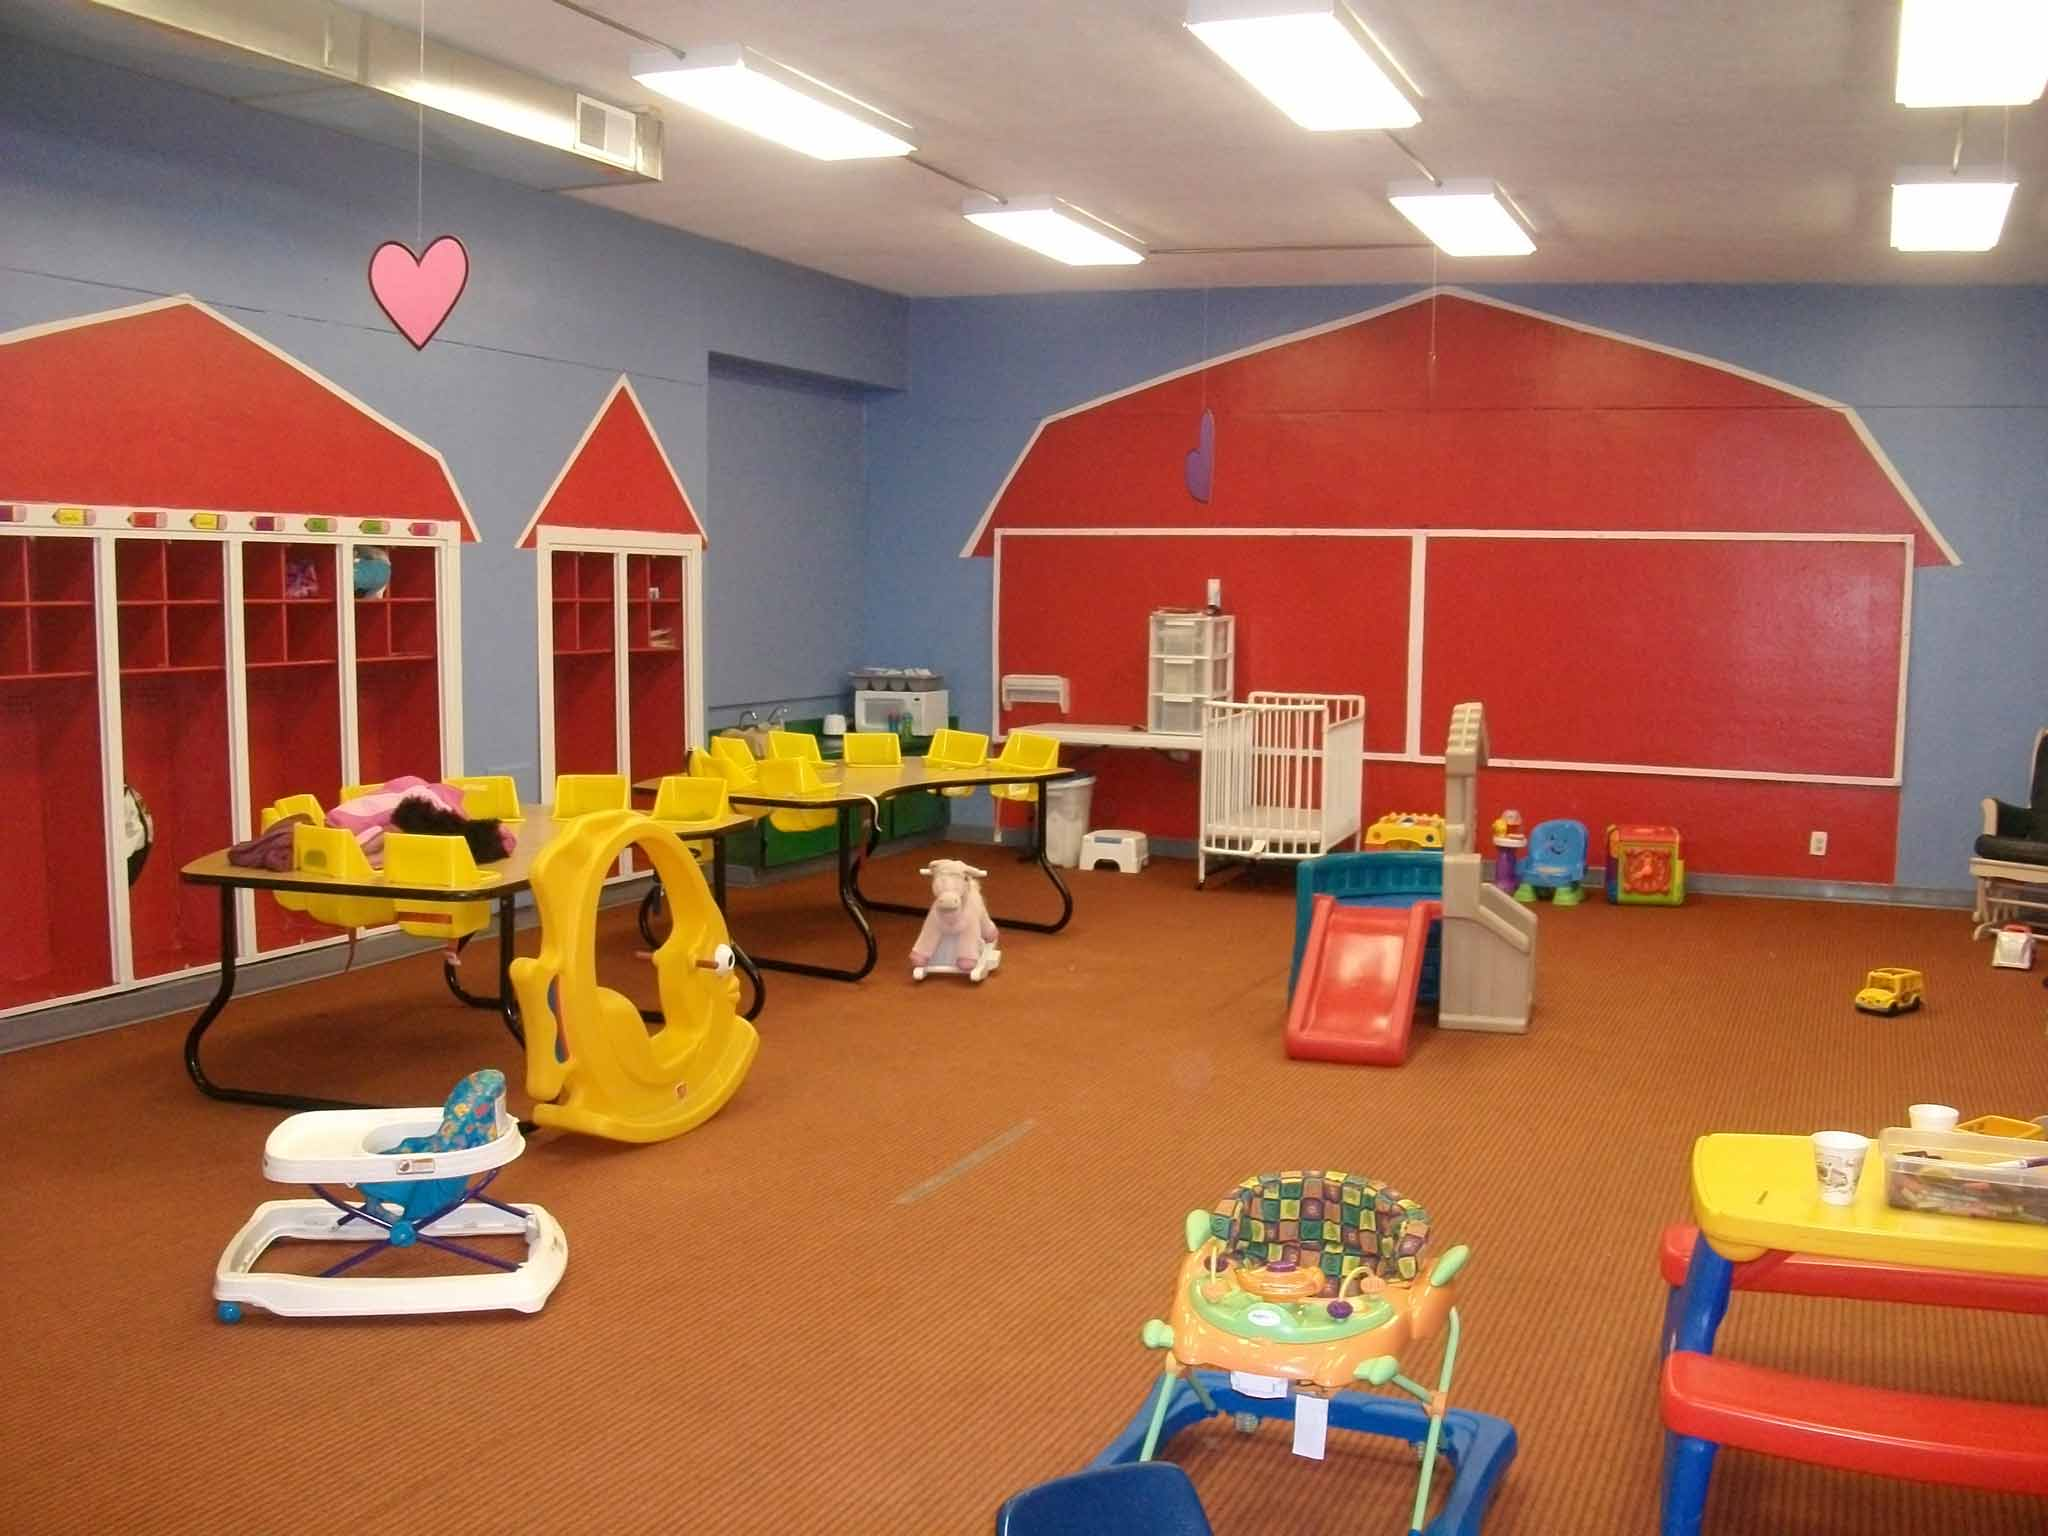 Decor Center What Supplies Are Needed To Open A Daycare Center Or